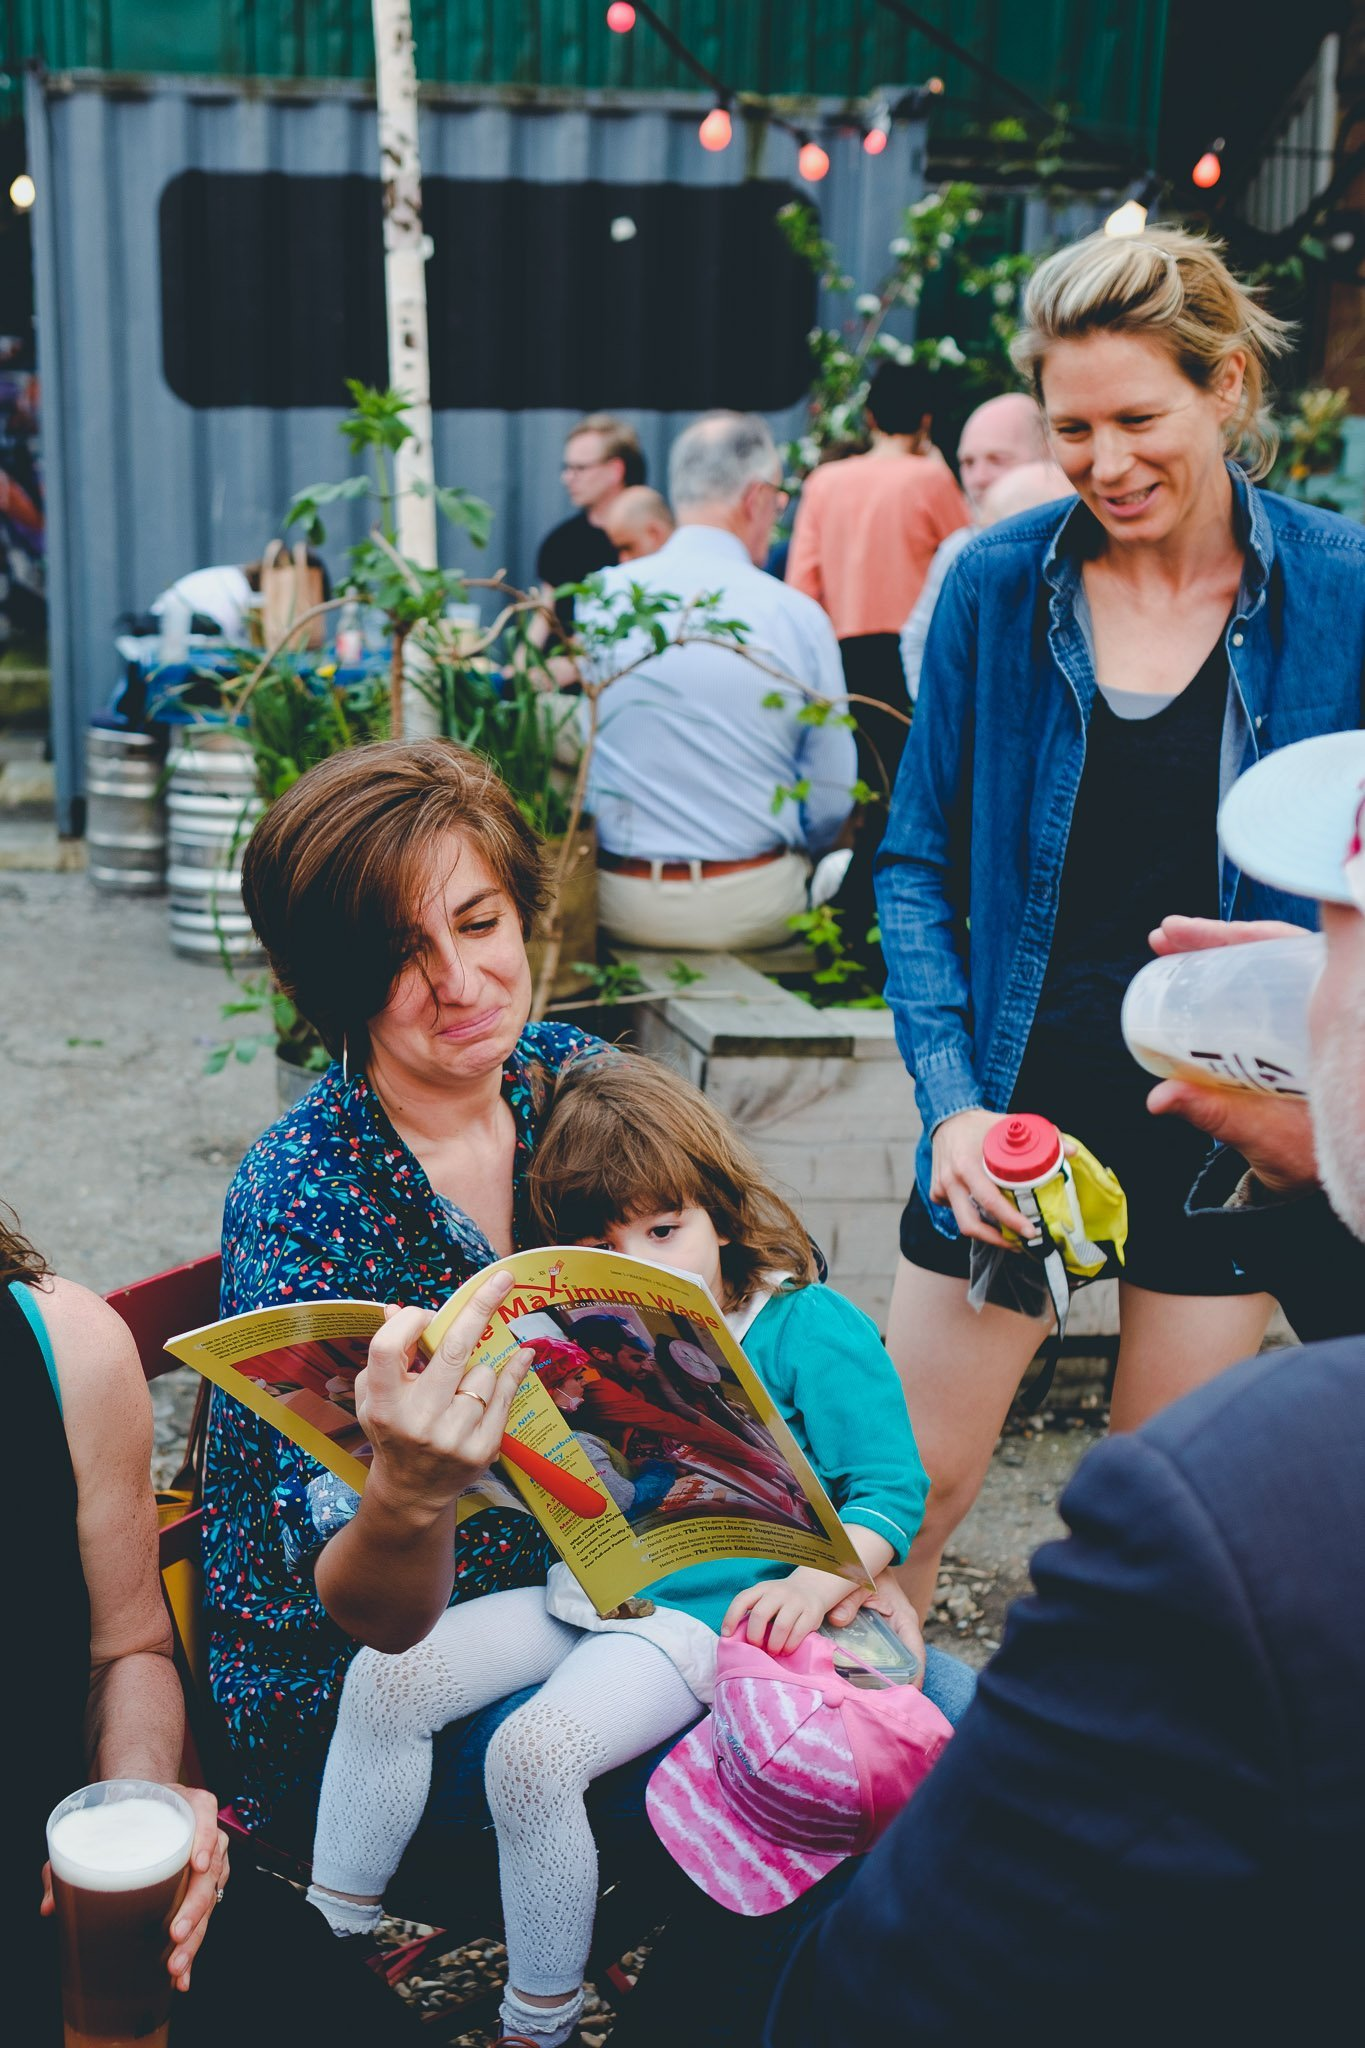 Fans reading books at 40FT Brewery in Dalston London